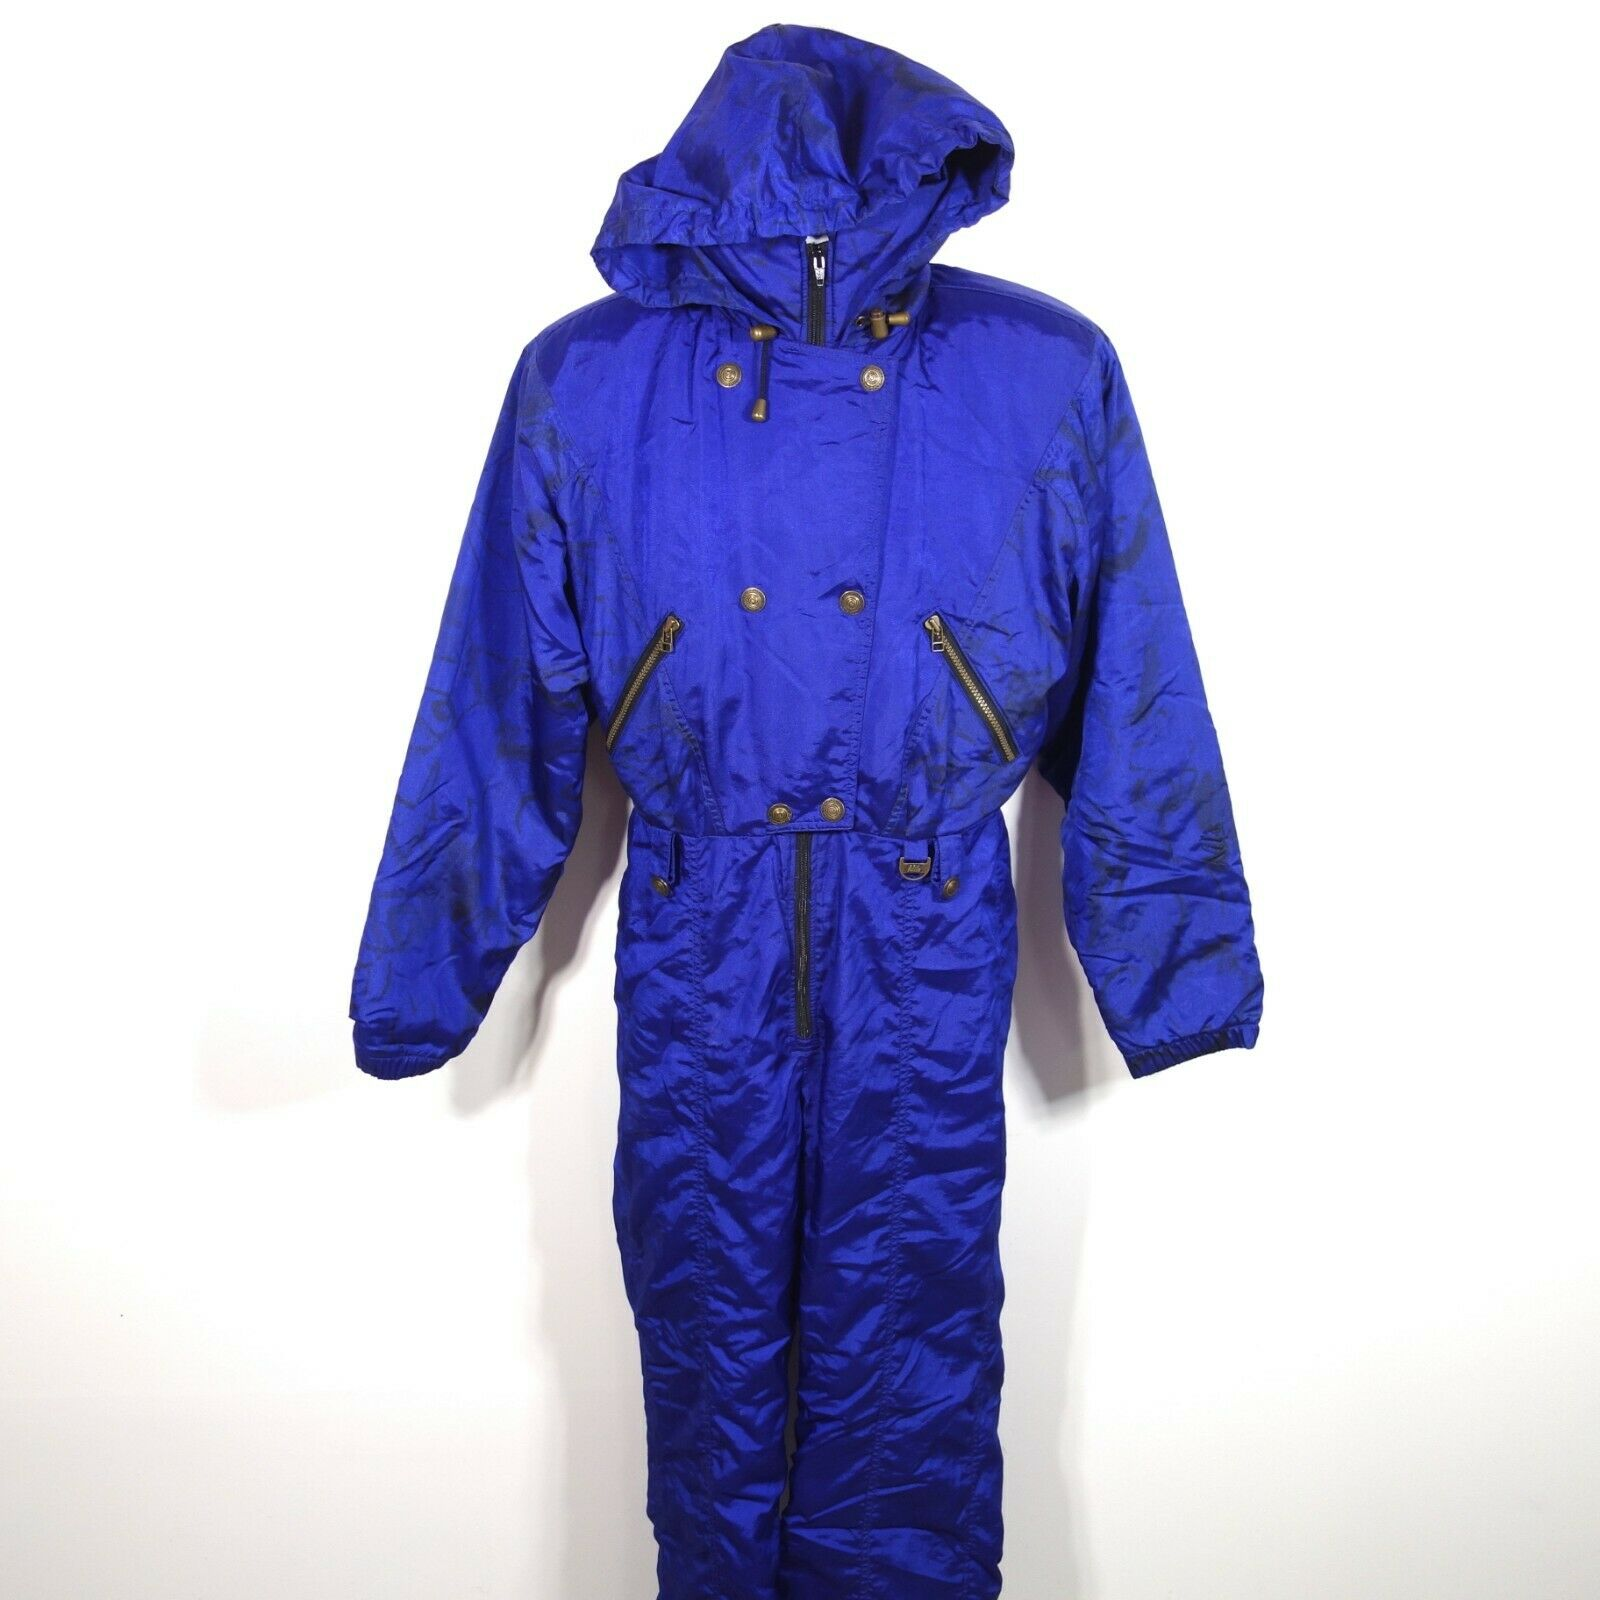 Vtg Nils Skiwear Snowsuit One Piece Jumper Women's 10 Made in USA Nylon Poly